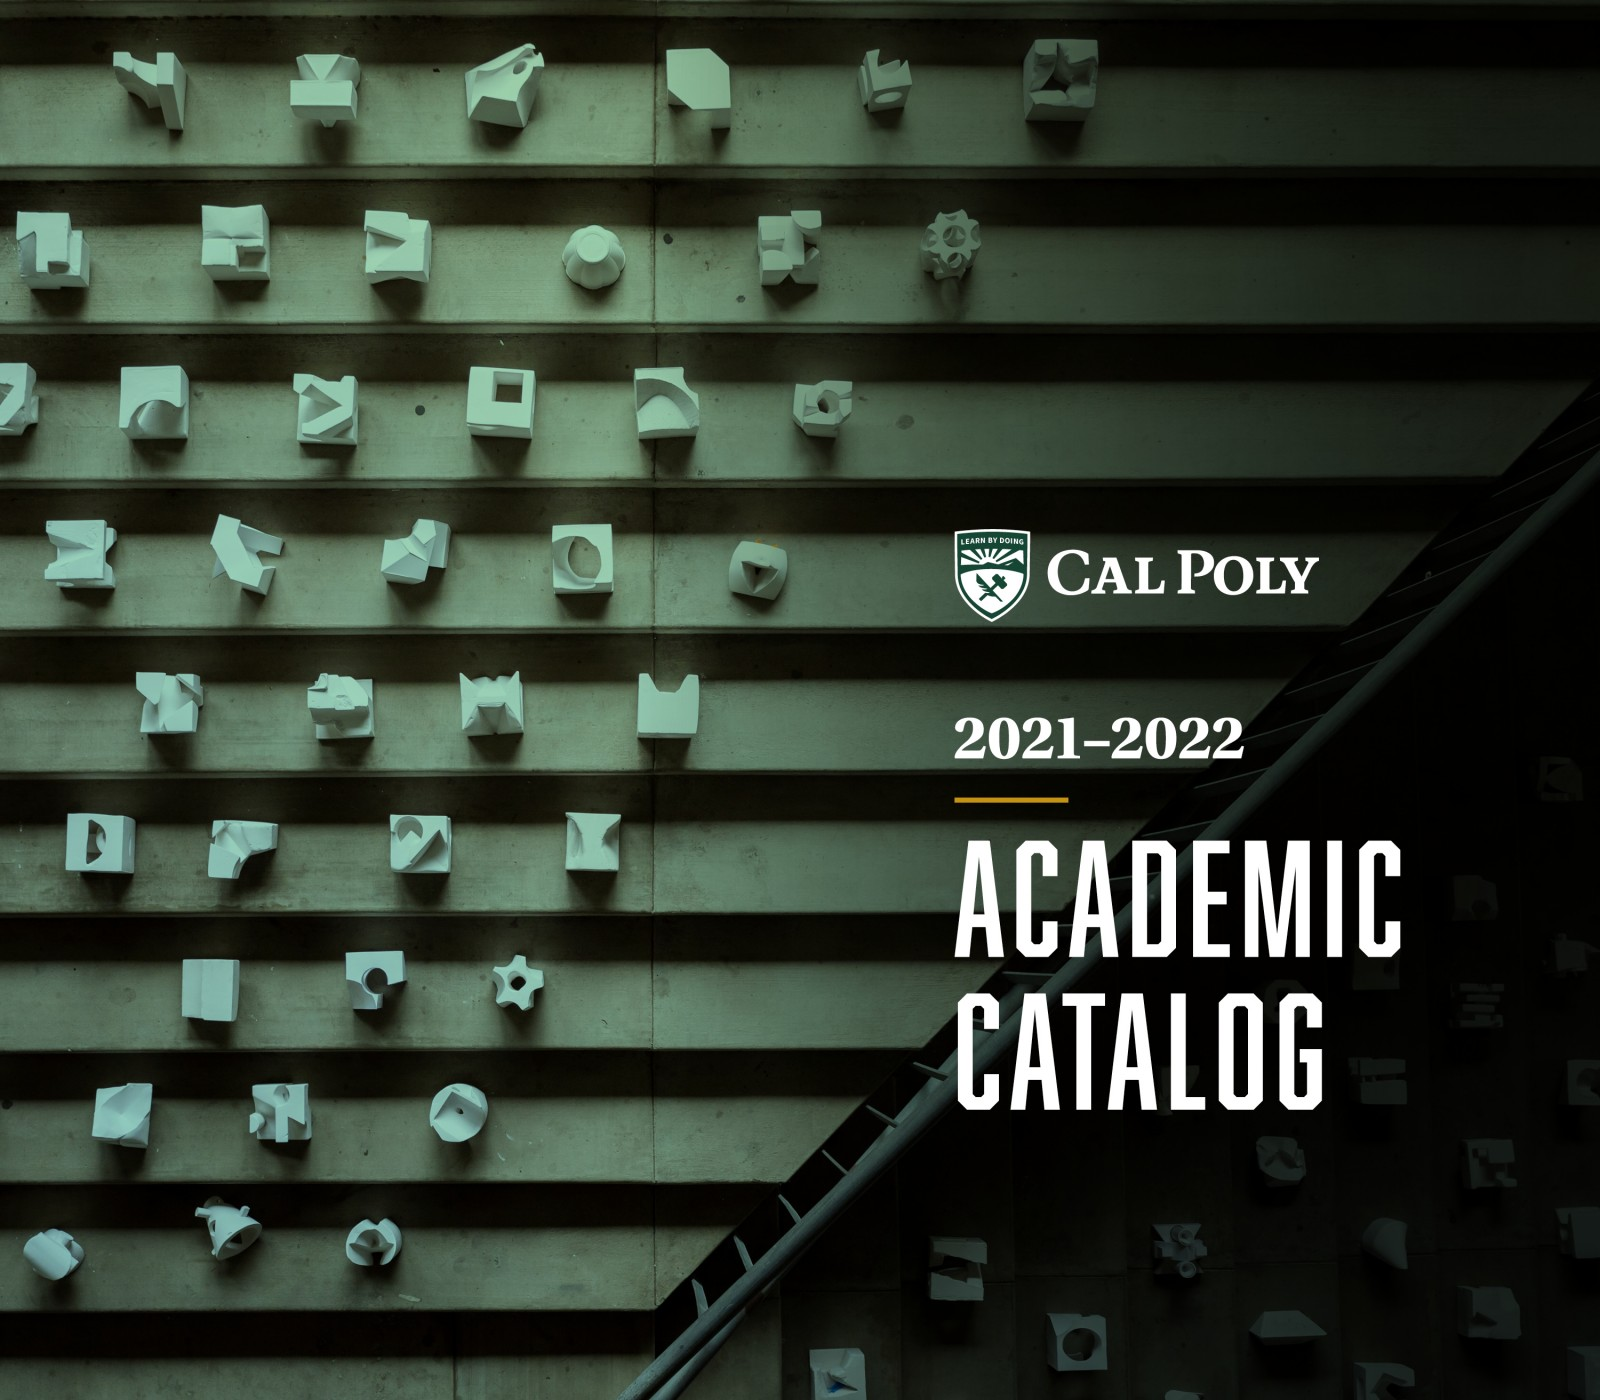 Academic Catalog 2021-2022 Web Cover Image